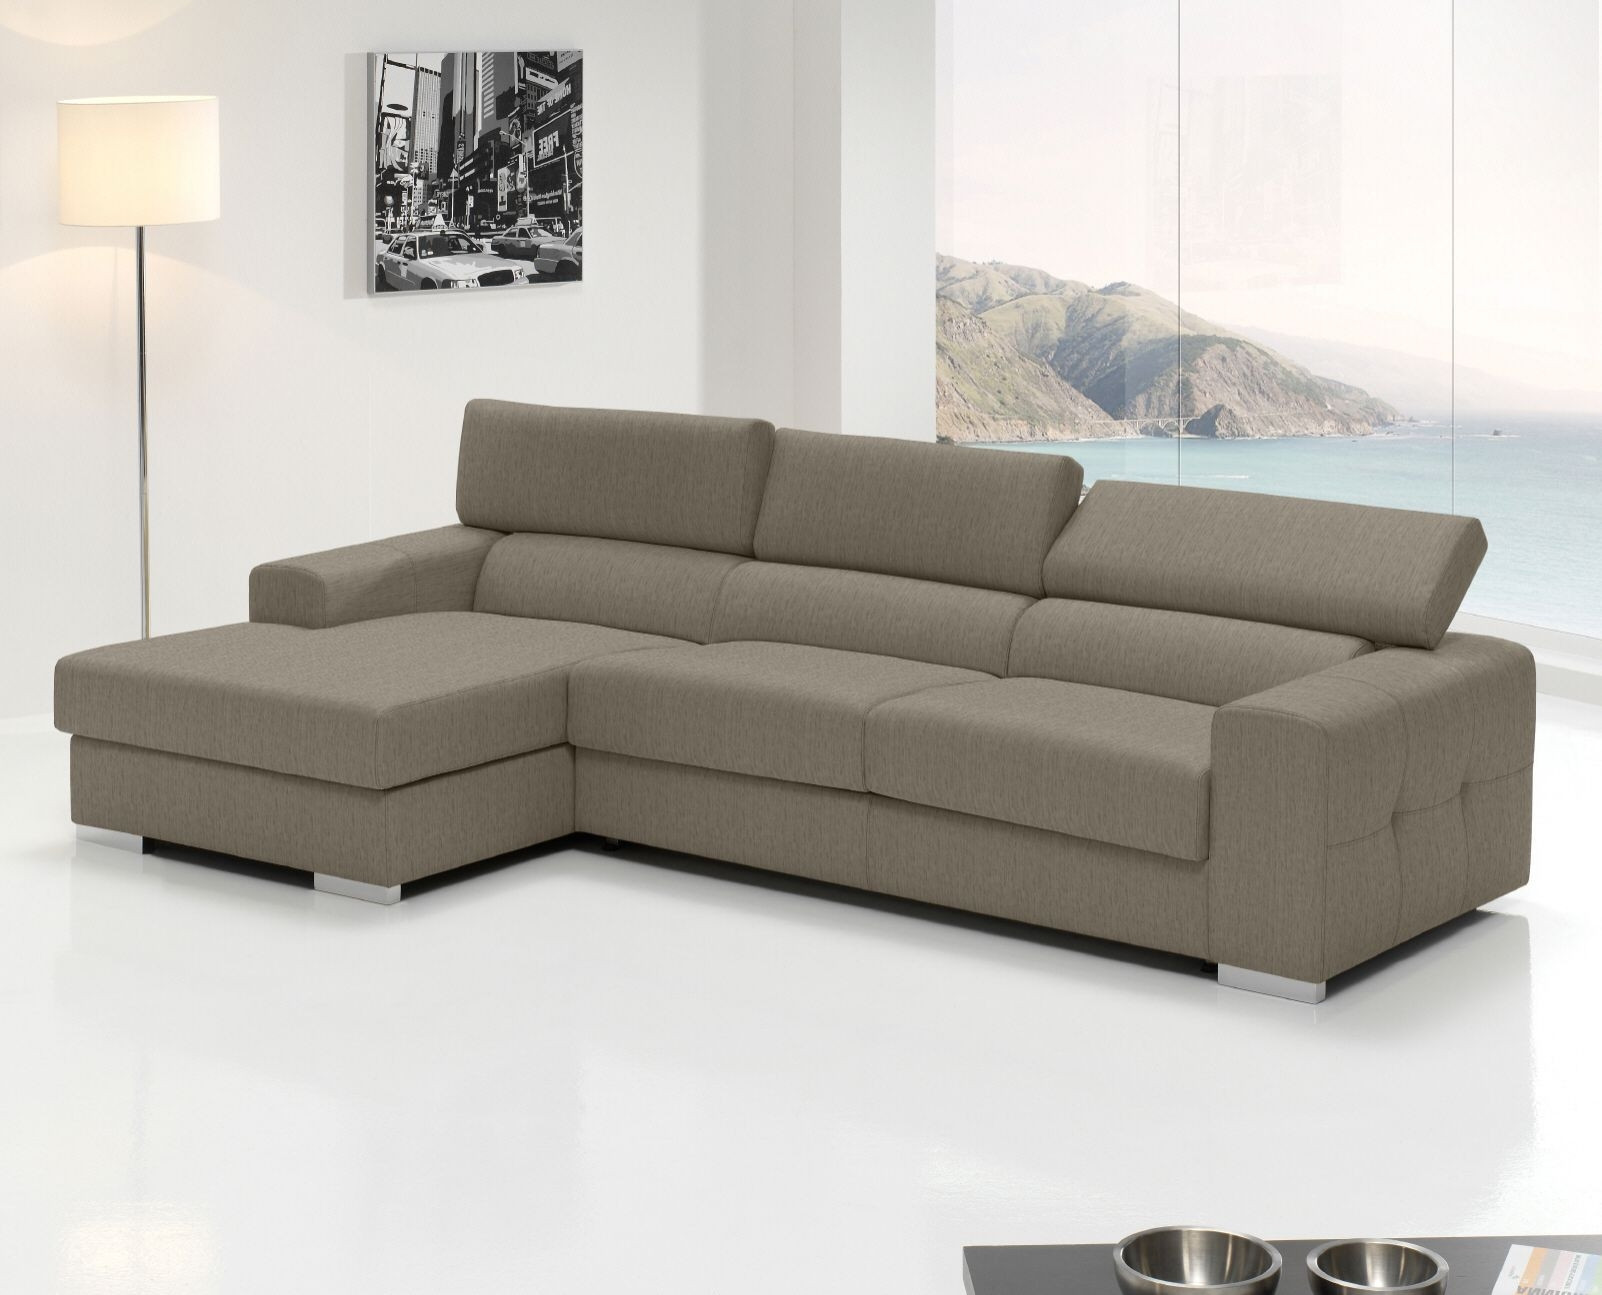 Chaise Longue Cama Baratos Magnífica sofás Cama Baratos En 3 Plazas Cama Chaise Longue Of Chaise Longue Cama Baratos Perfecto sofa Chaise Longue Barato Long with 1 Cama Segunda Mano